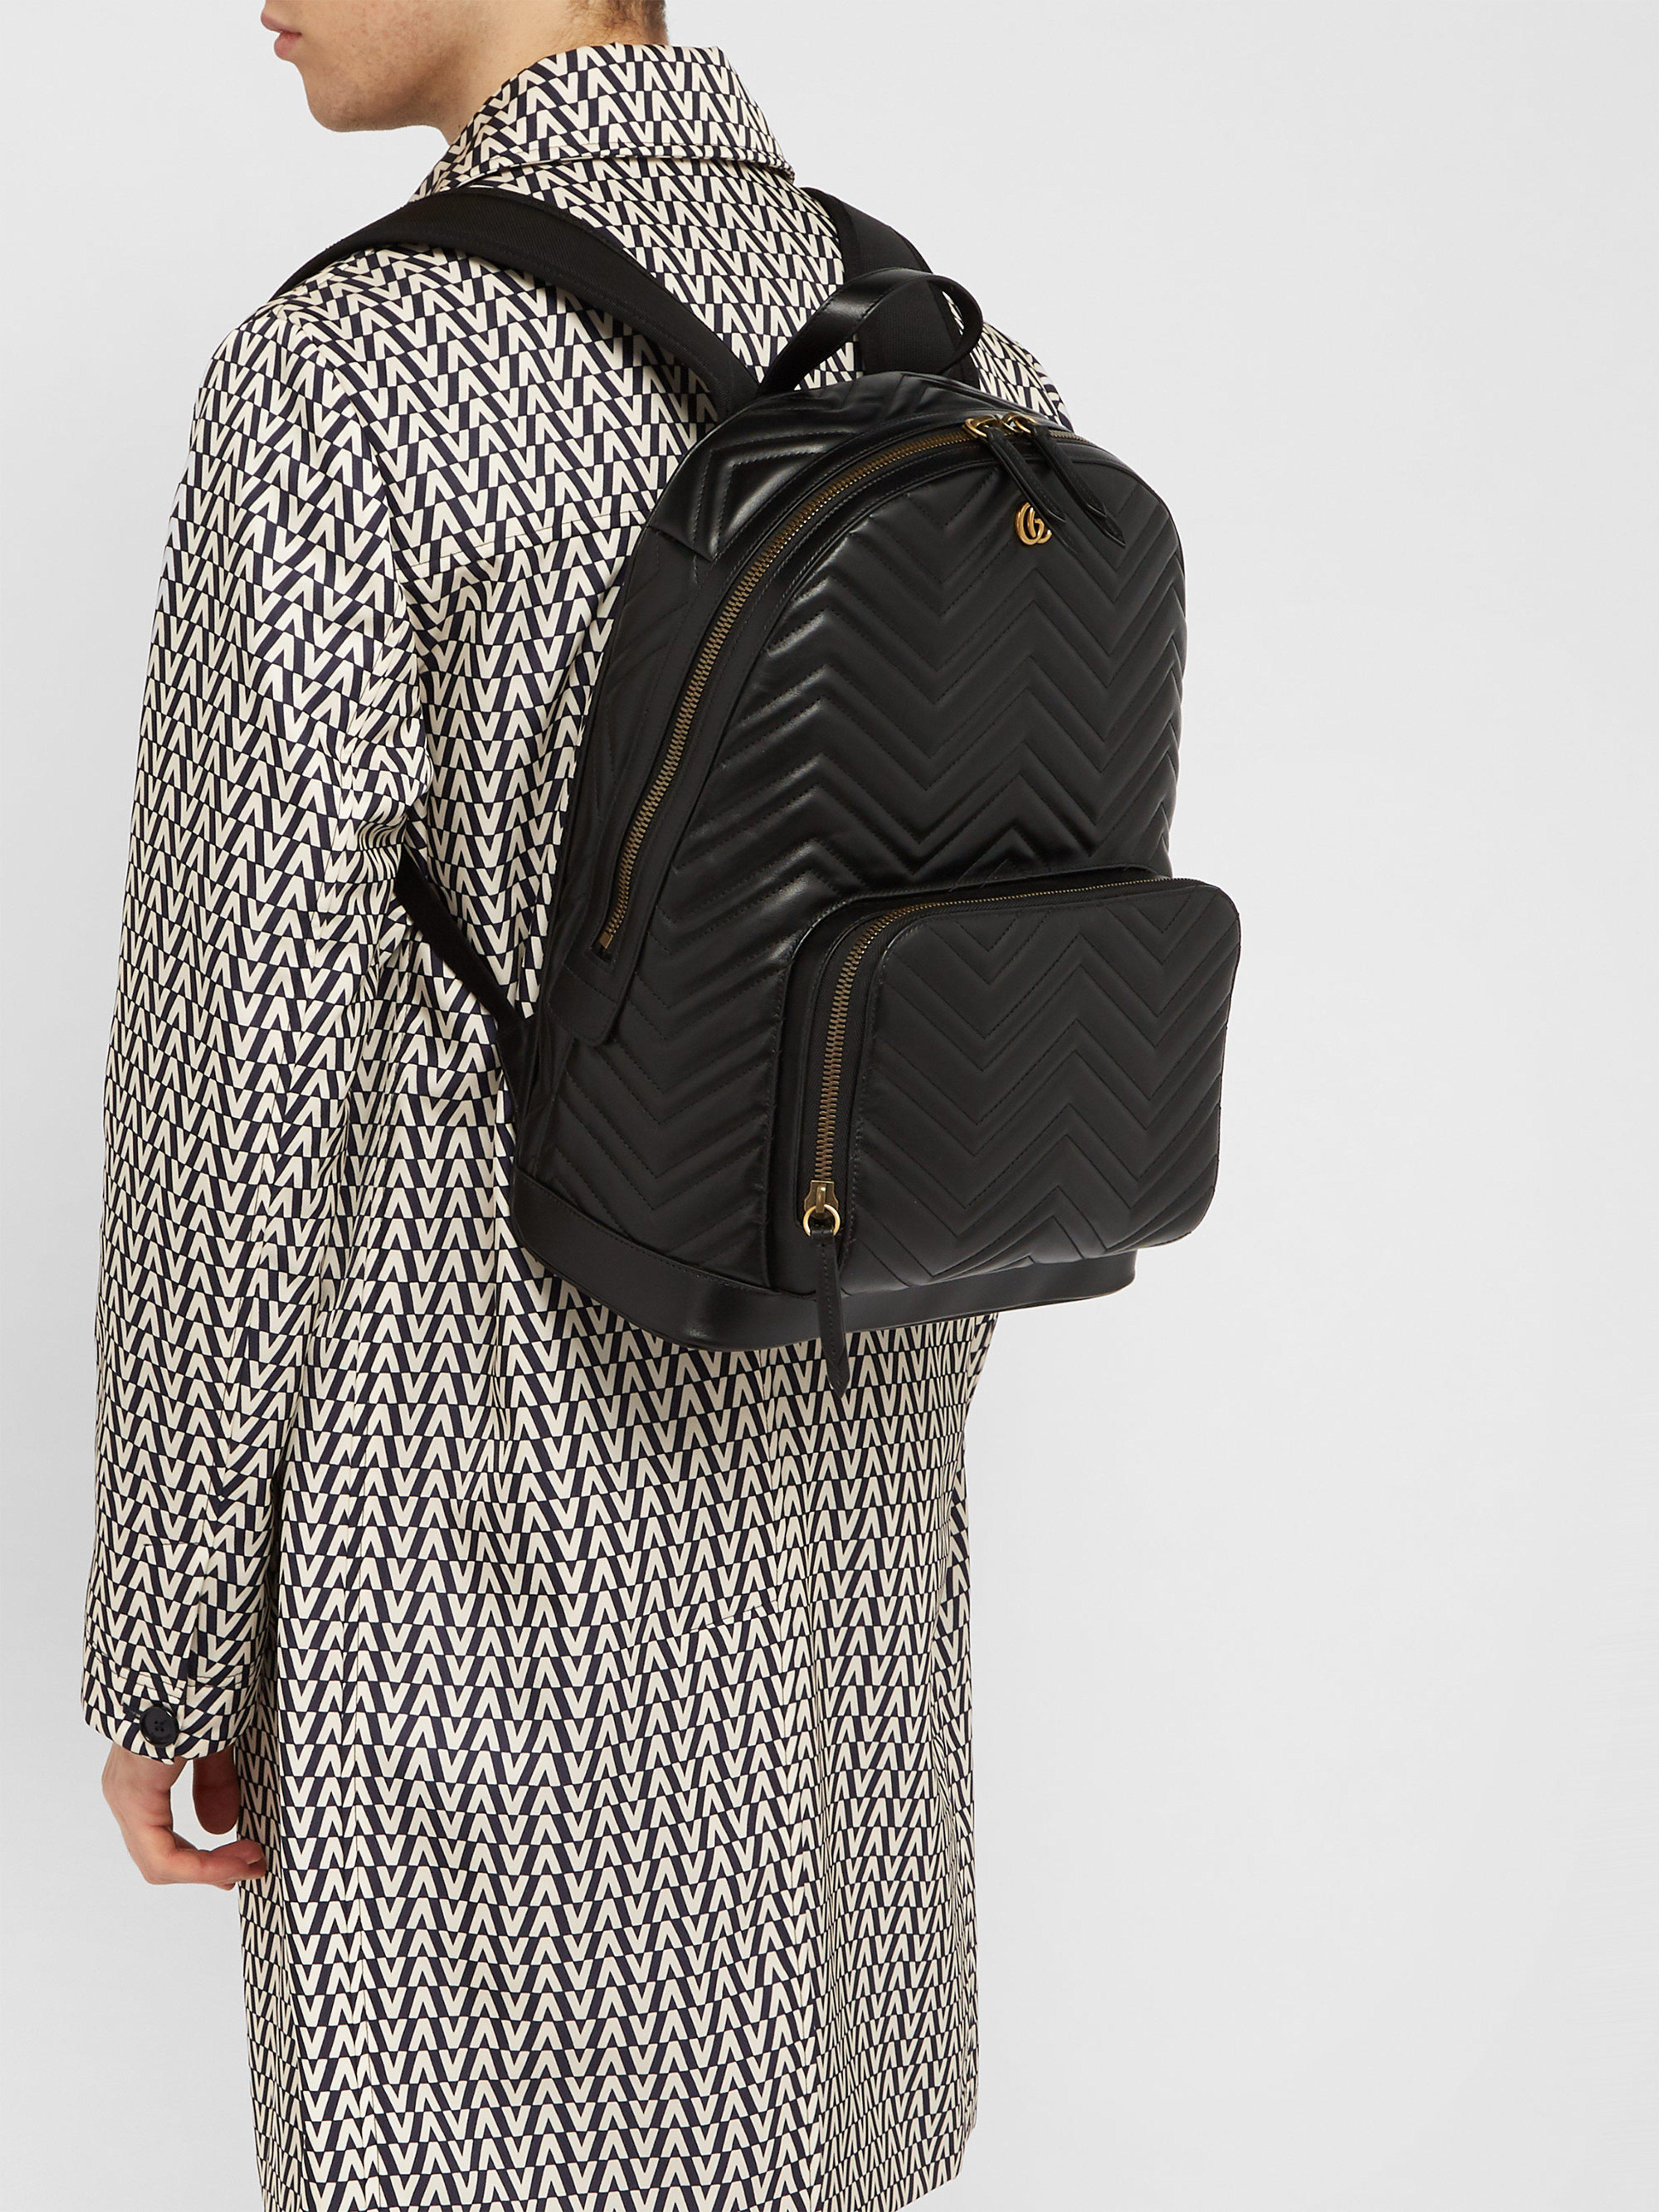 023c3b5489b0 Gucci - Black Marmont Leather Backpack for Men - Lyst. View fullscreen